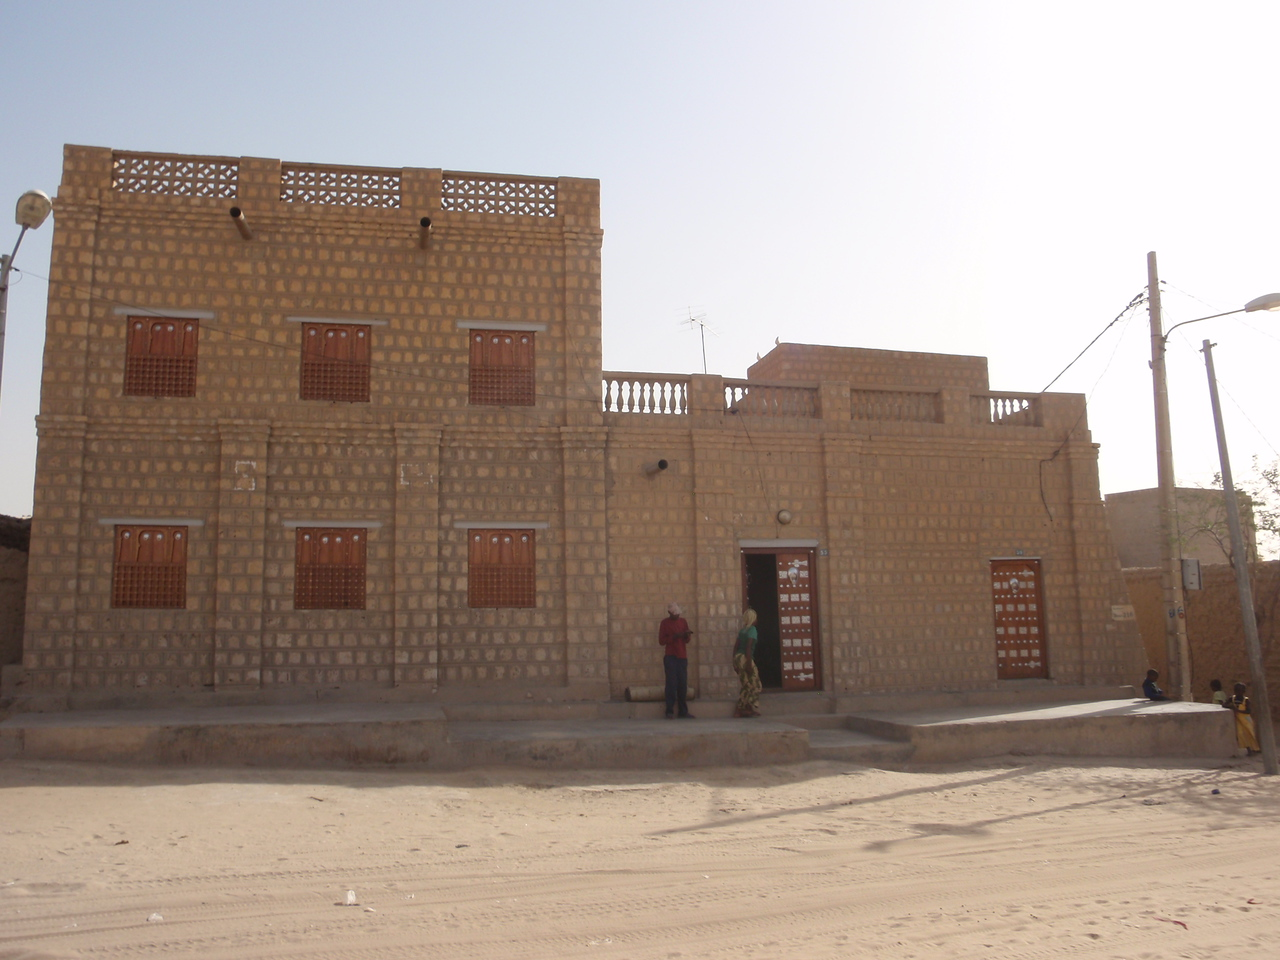 134_Timbuktu  The Marabout House